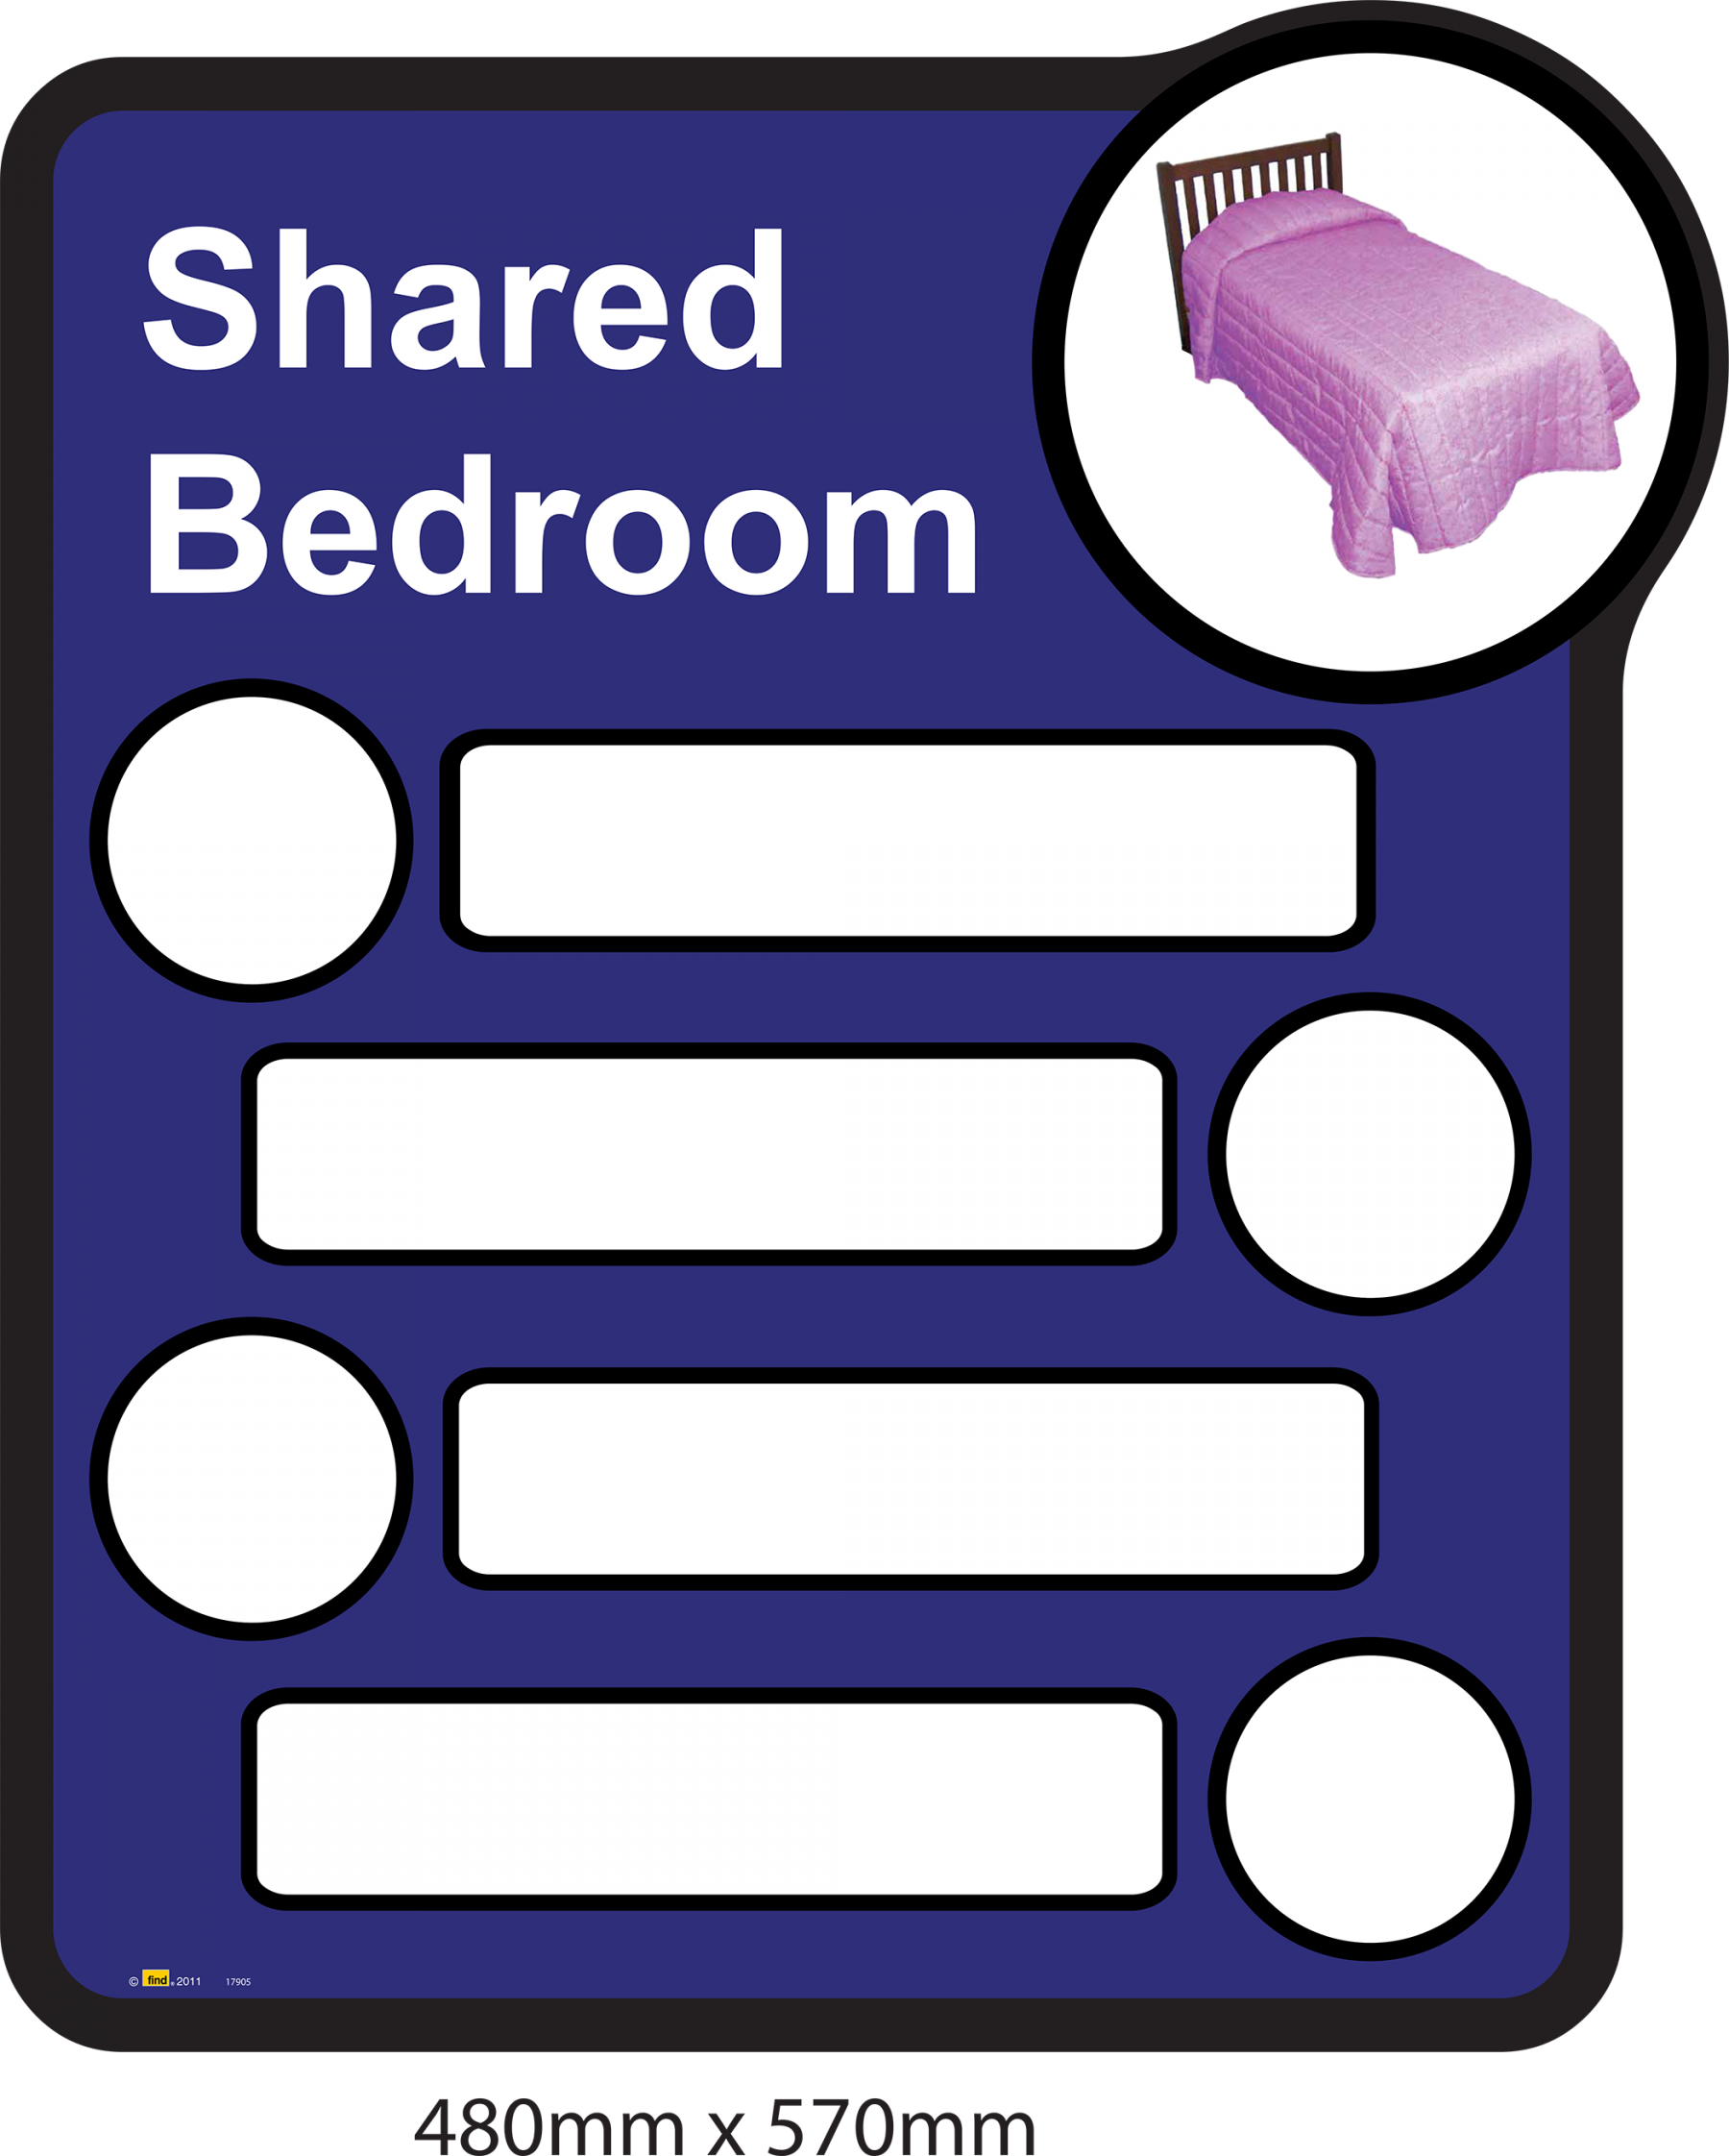 Bathroom Signs Dementia interchangeable signage - for bedrooms, toilets and bathrooms